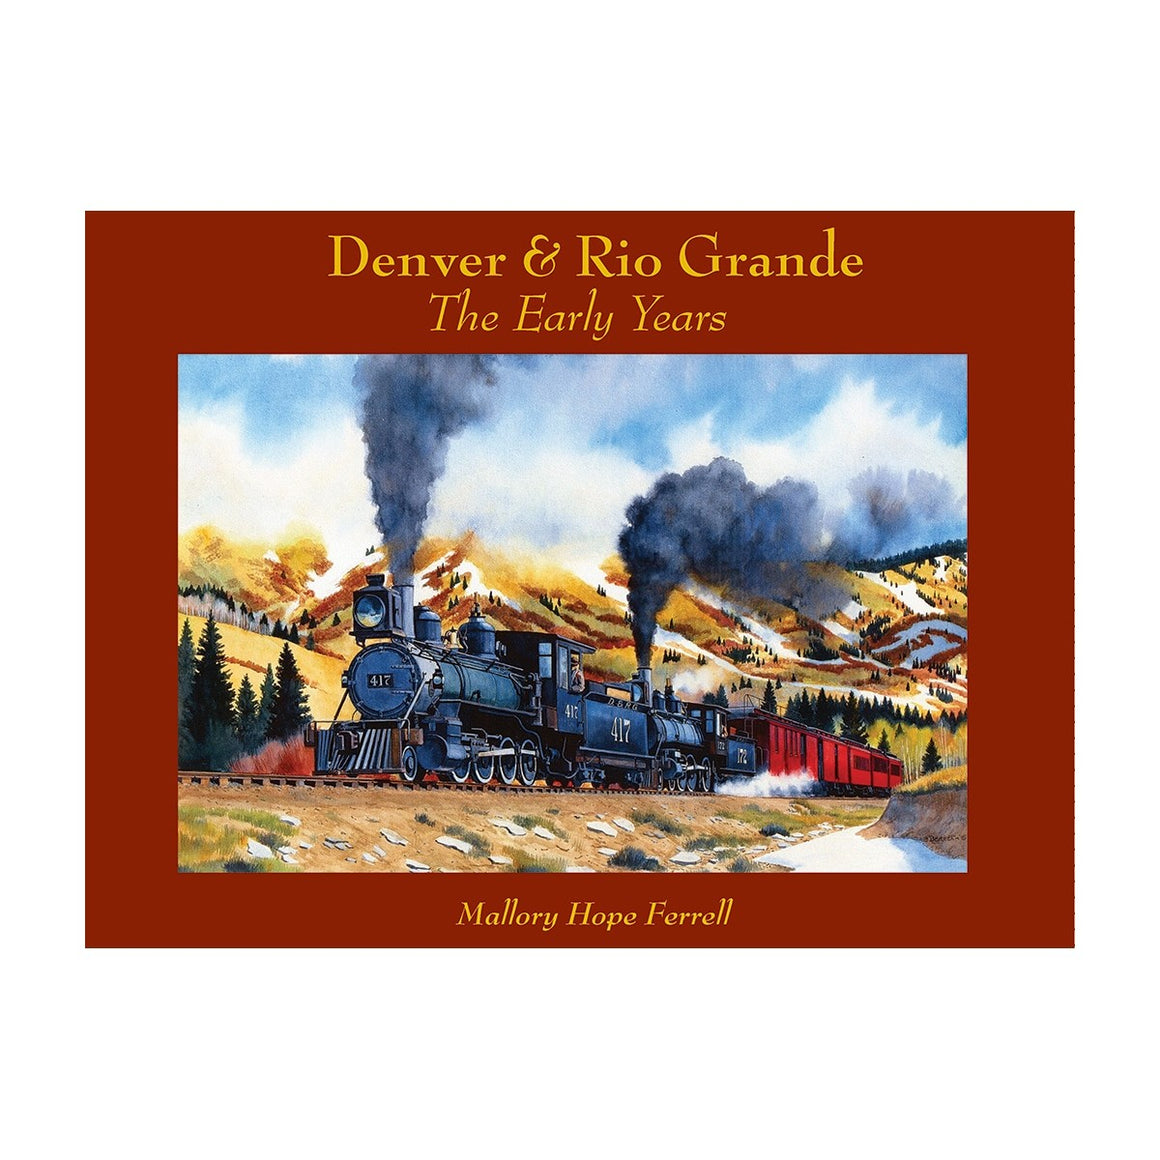 Books: Denver & Rio Grande - The Early Years